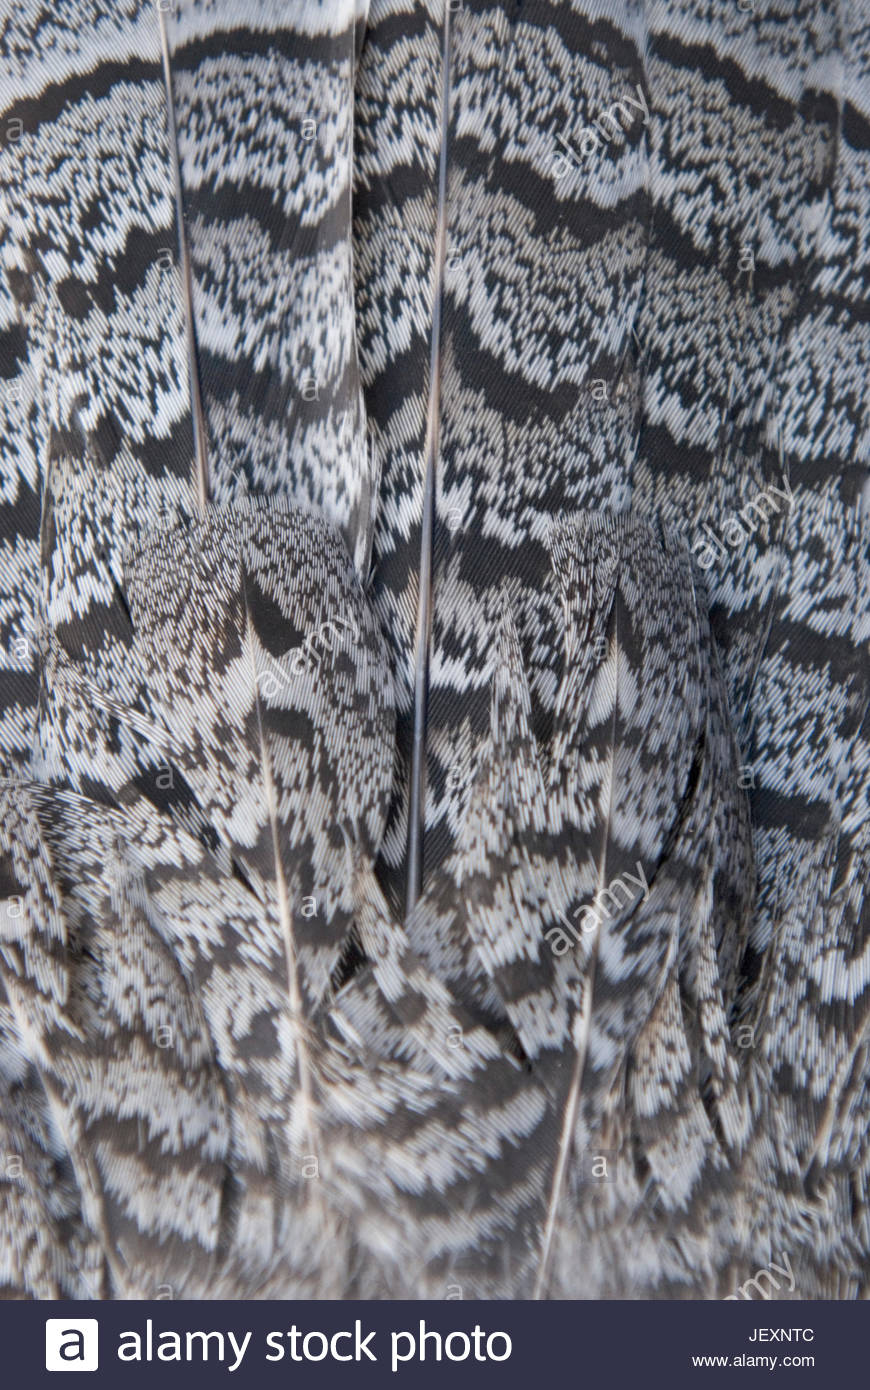 A close-up of feathers of a ruffed grouse, Bonasa umbellus. - Stock Image